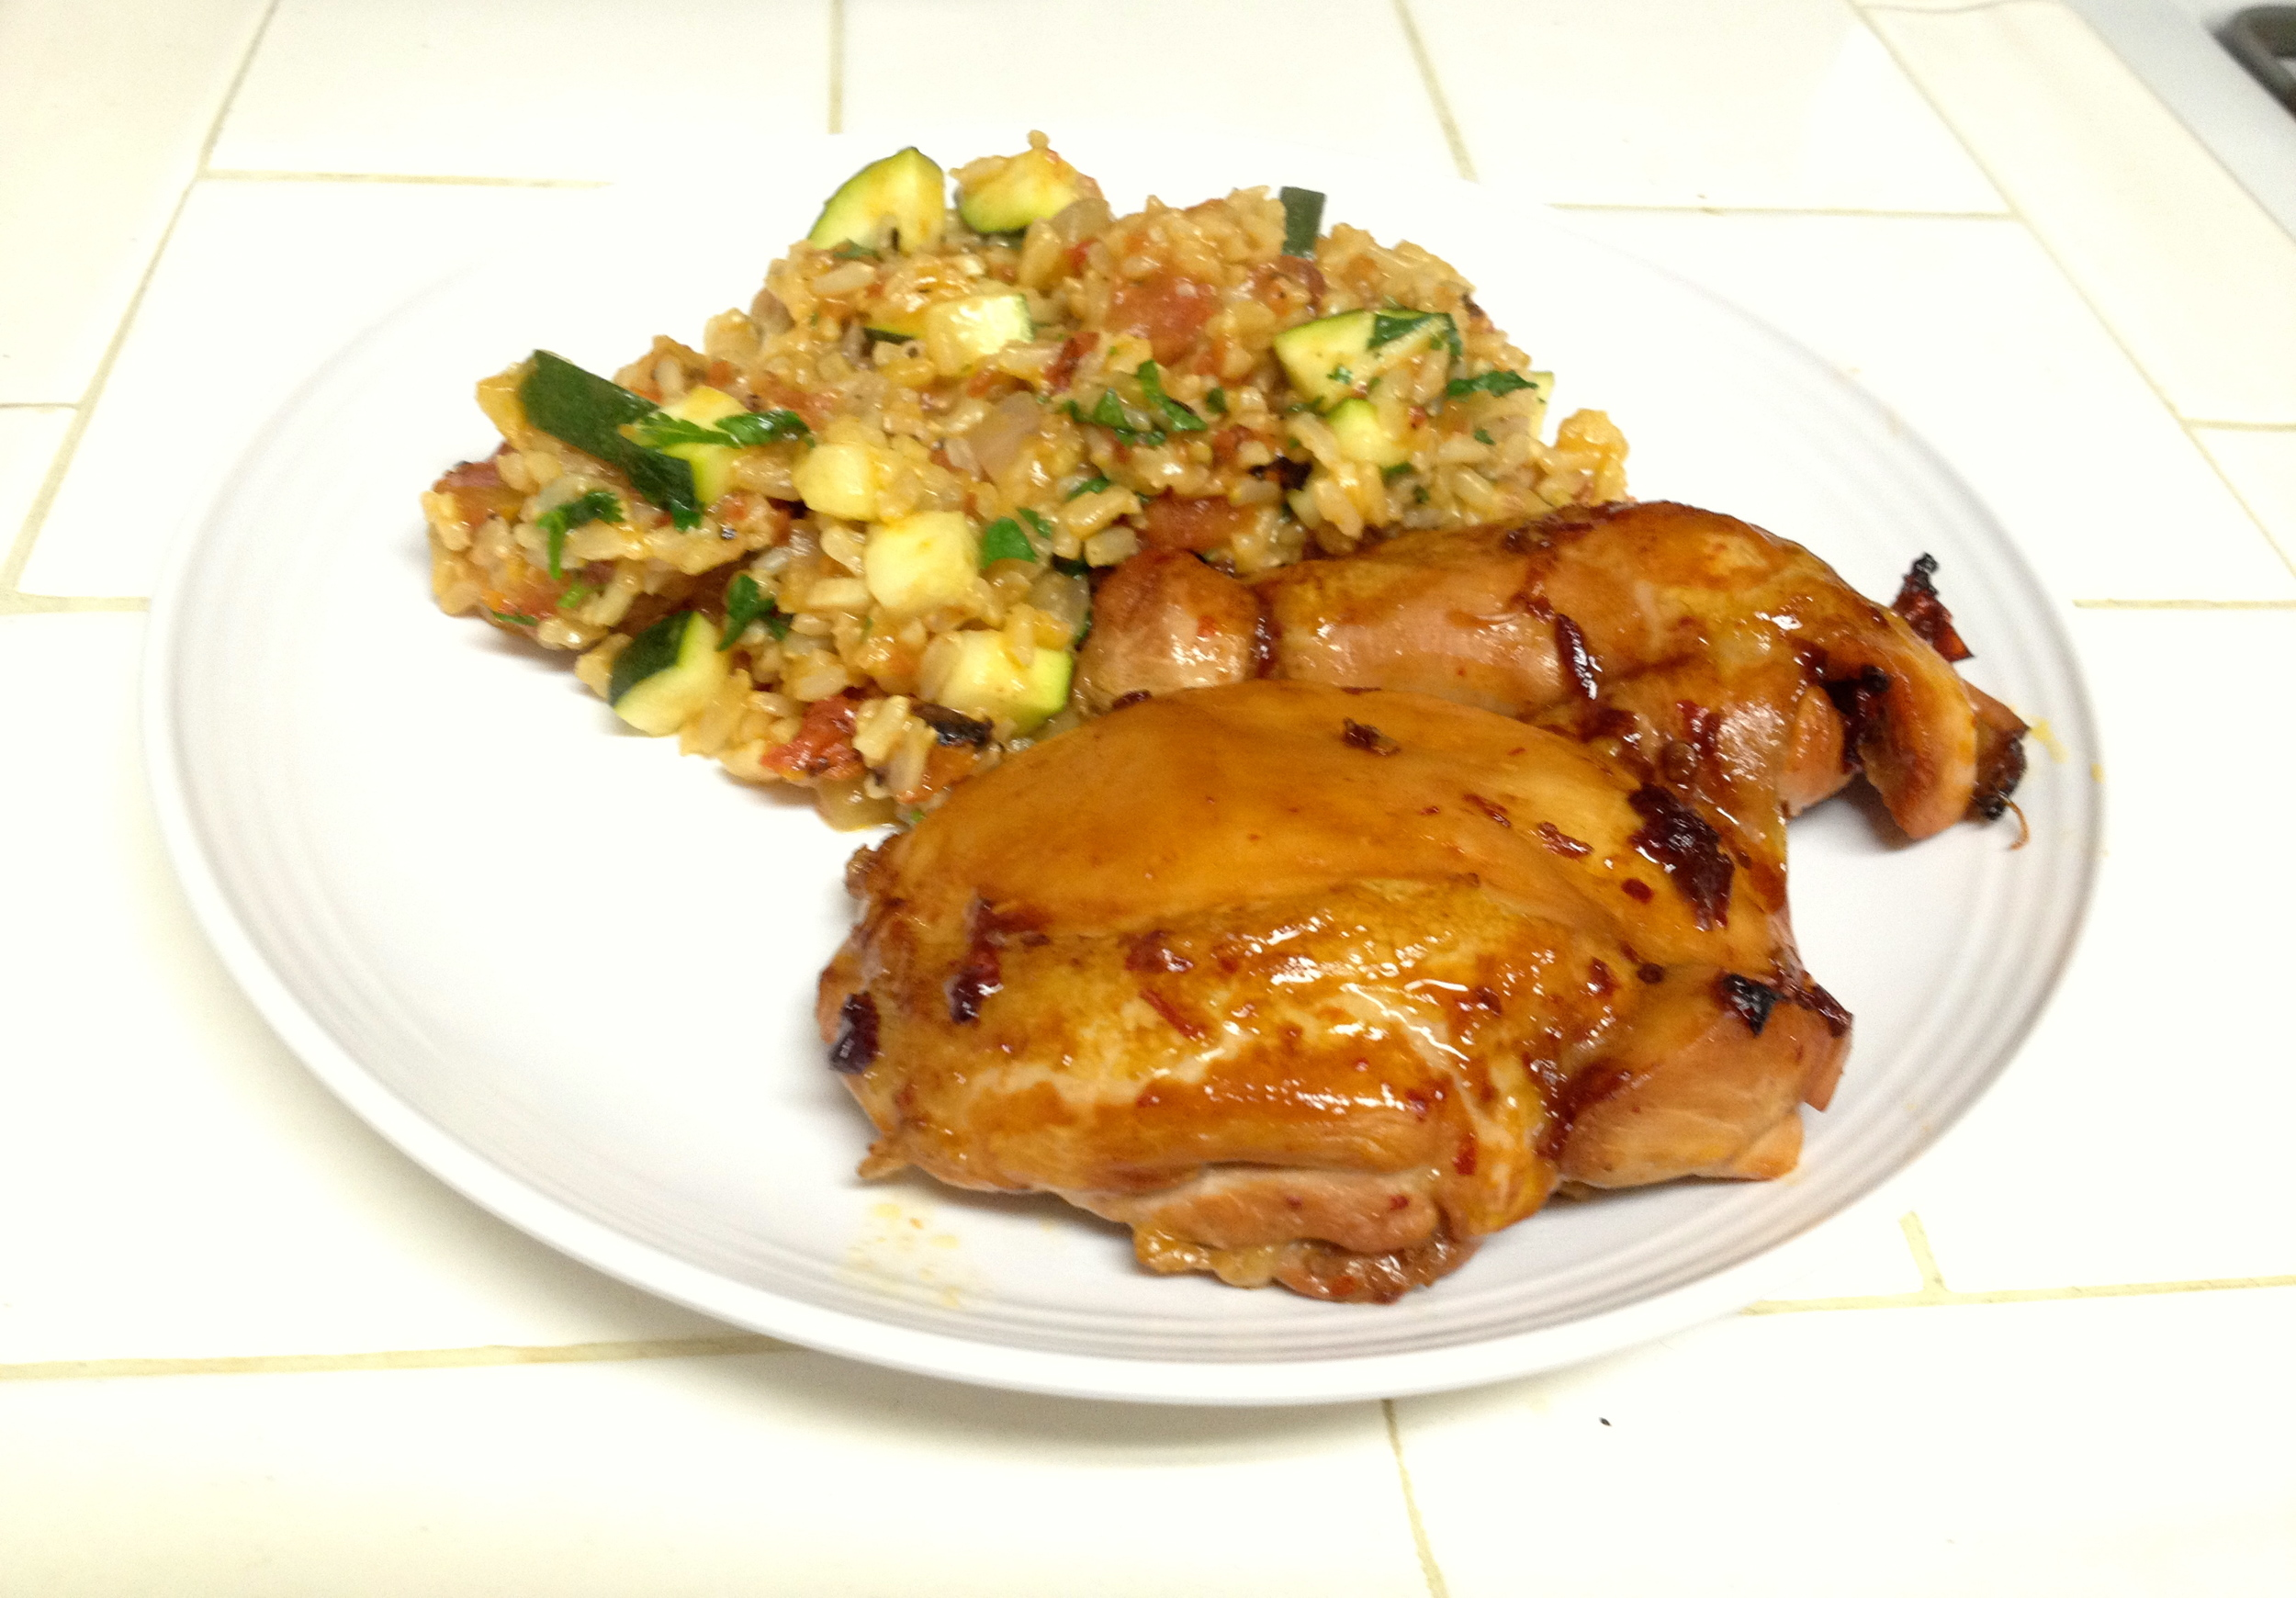 Latin baked chicken and Spanish rice